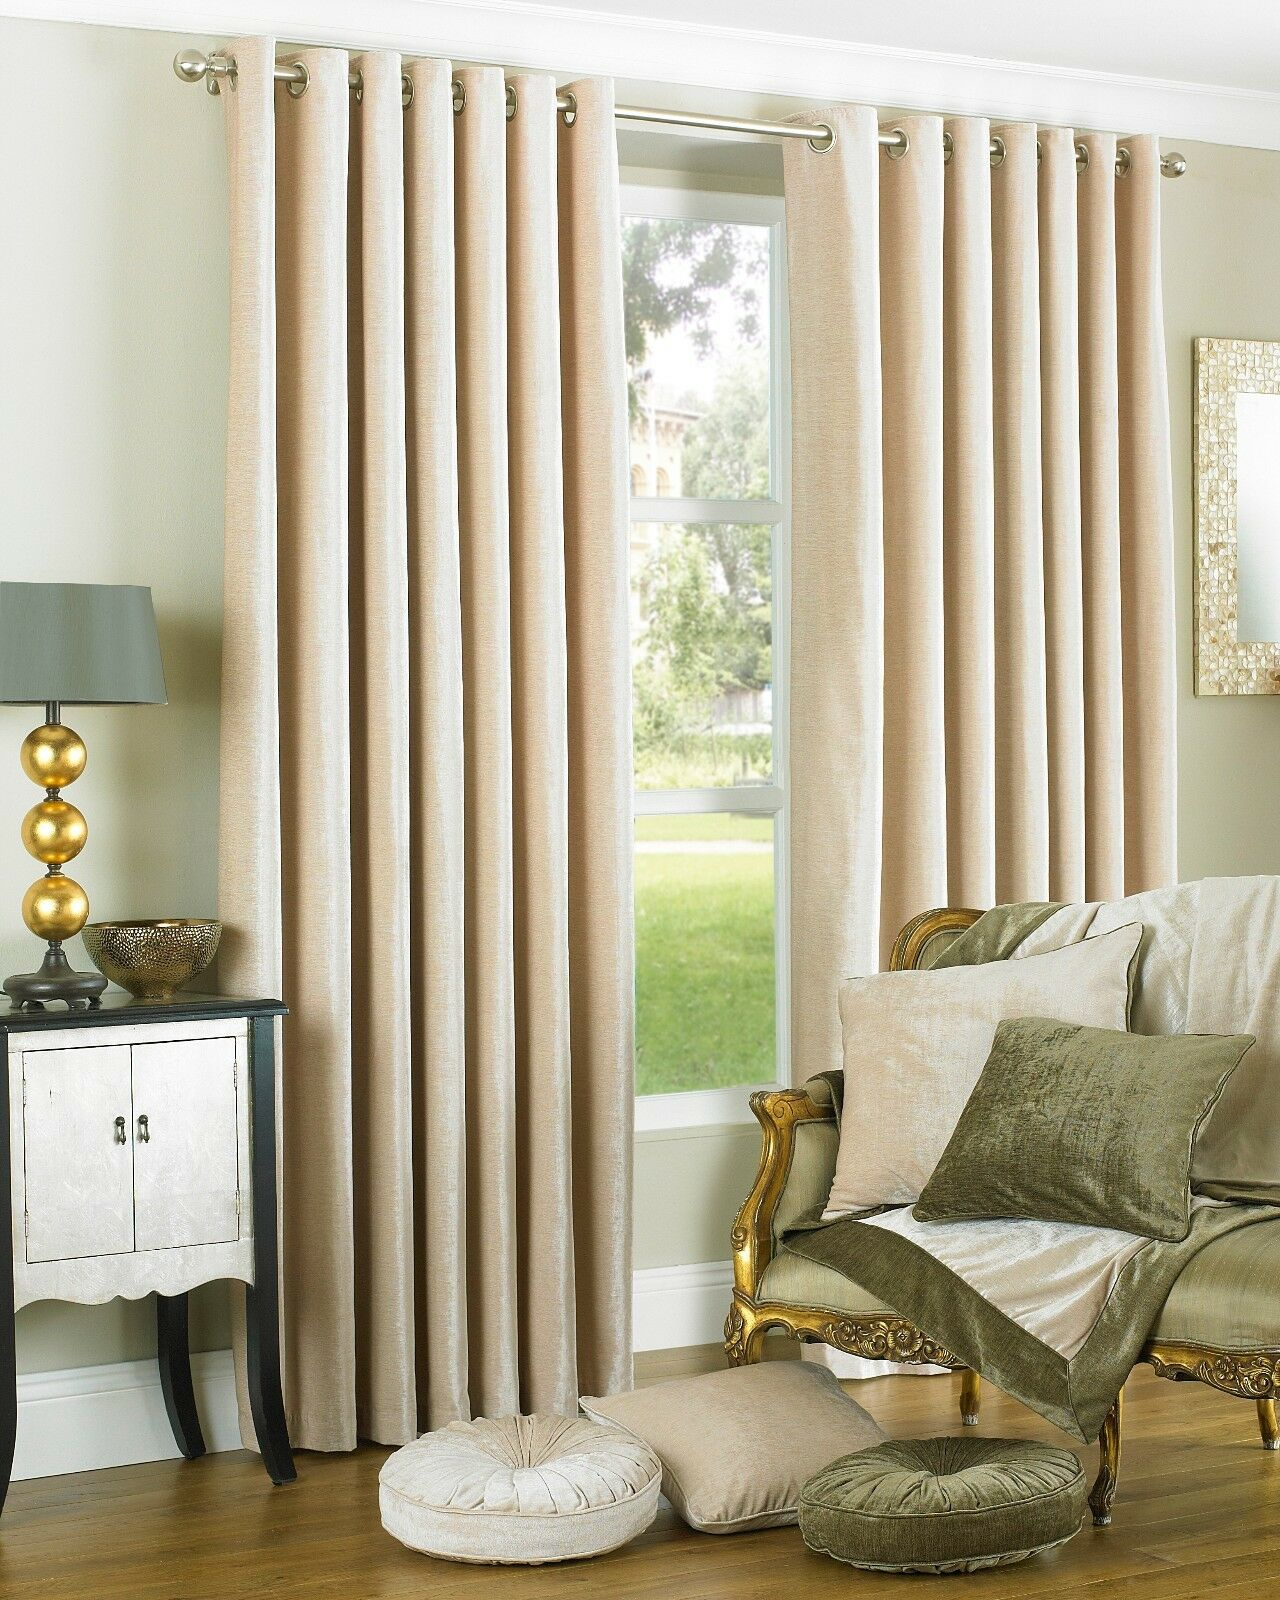 The Home Furnishings Company Wellesley Natural Faux Curtains and Cushions